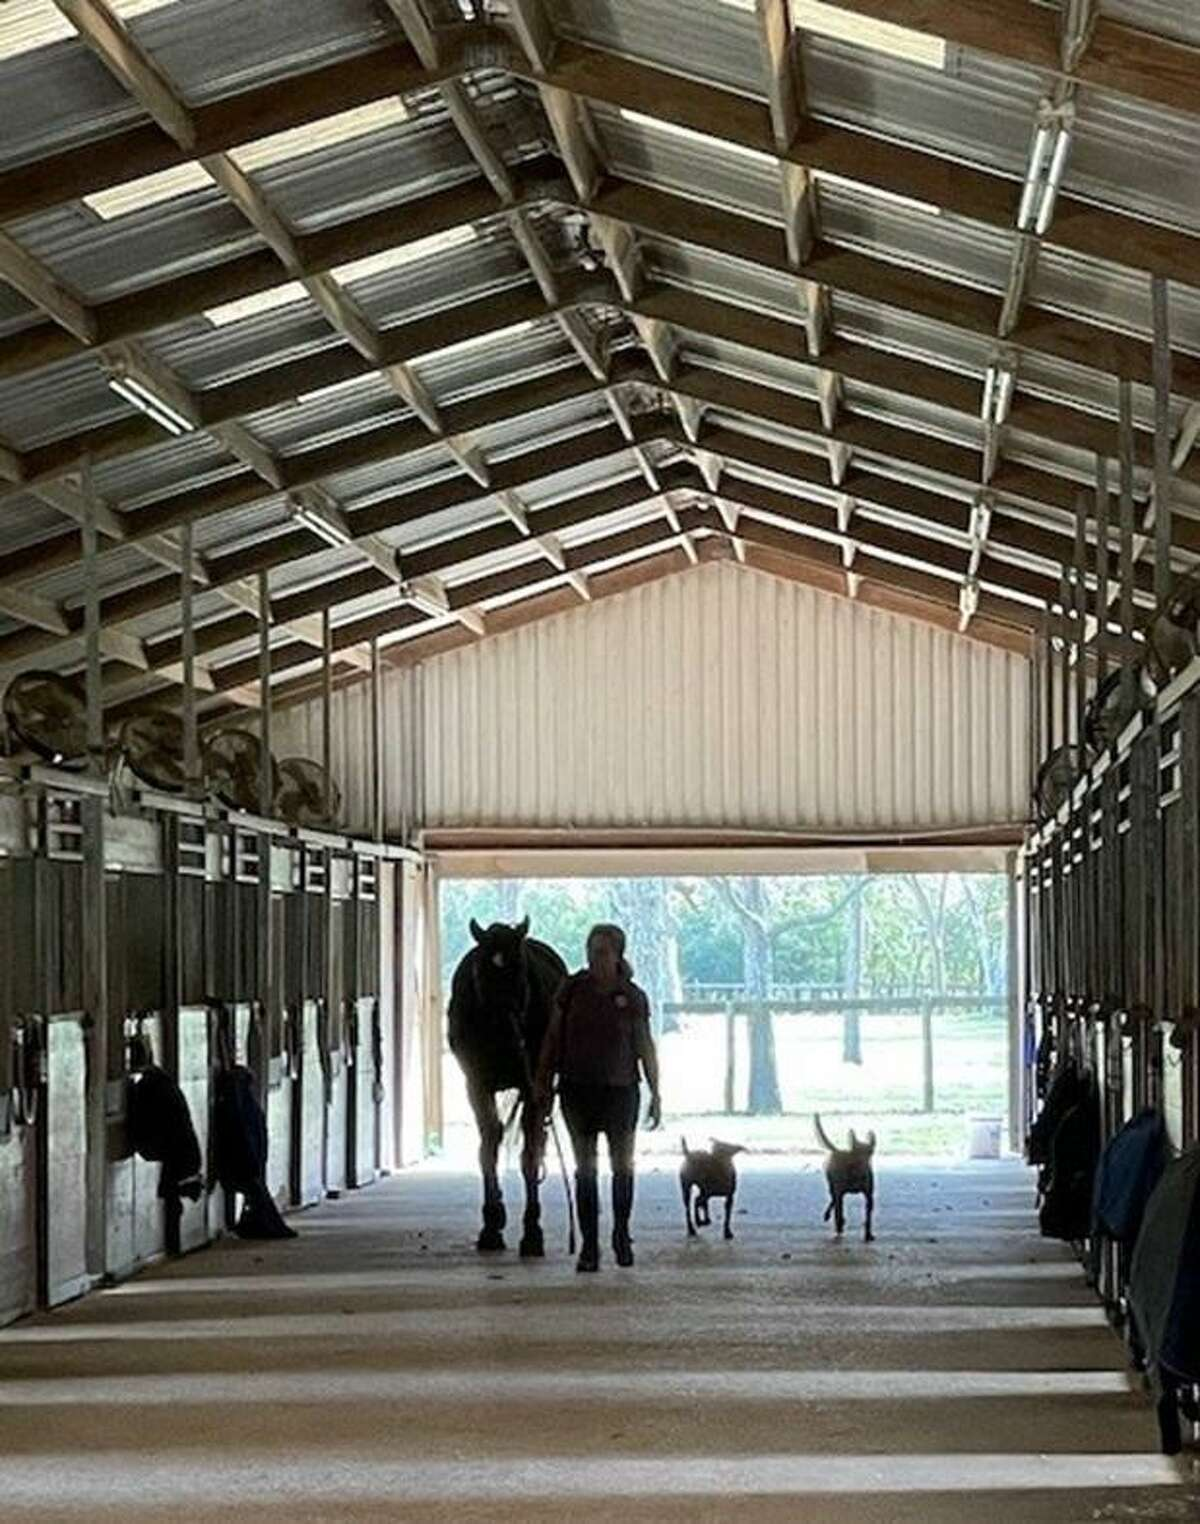 SIRE recently announced it has a permanent home in Fulshear, Texas. SIRE Therapeutic Horsemanship is located on a 40-acre equine site at 7206 Pool Hill Road in Fulshear, just southwest of Katy.